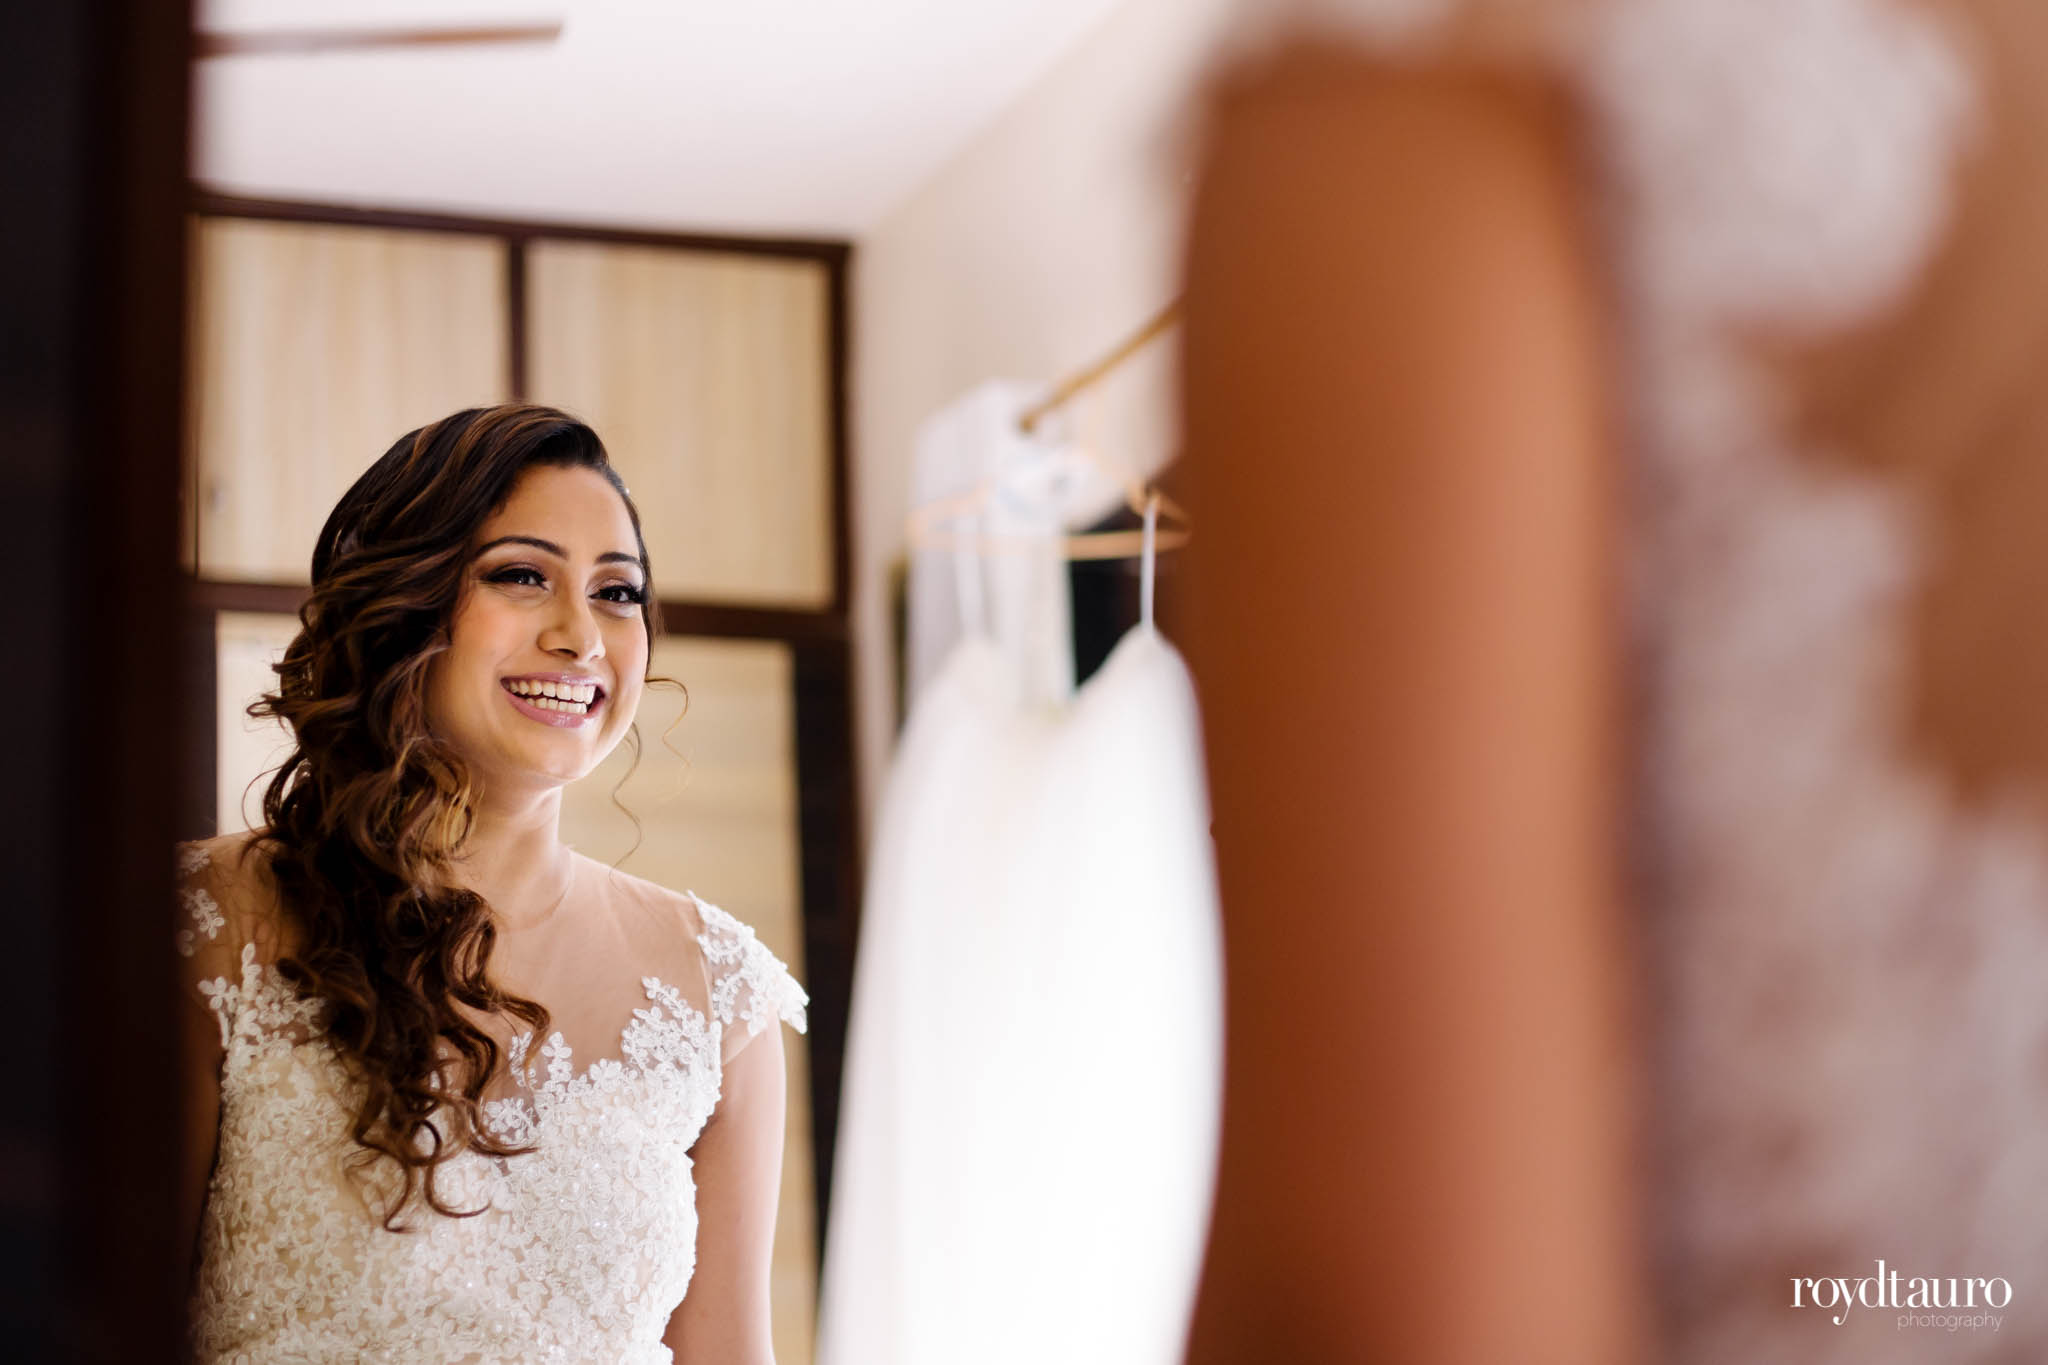 Kim-Rahul-Wedding-35.jpg